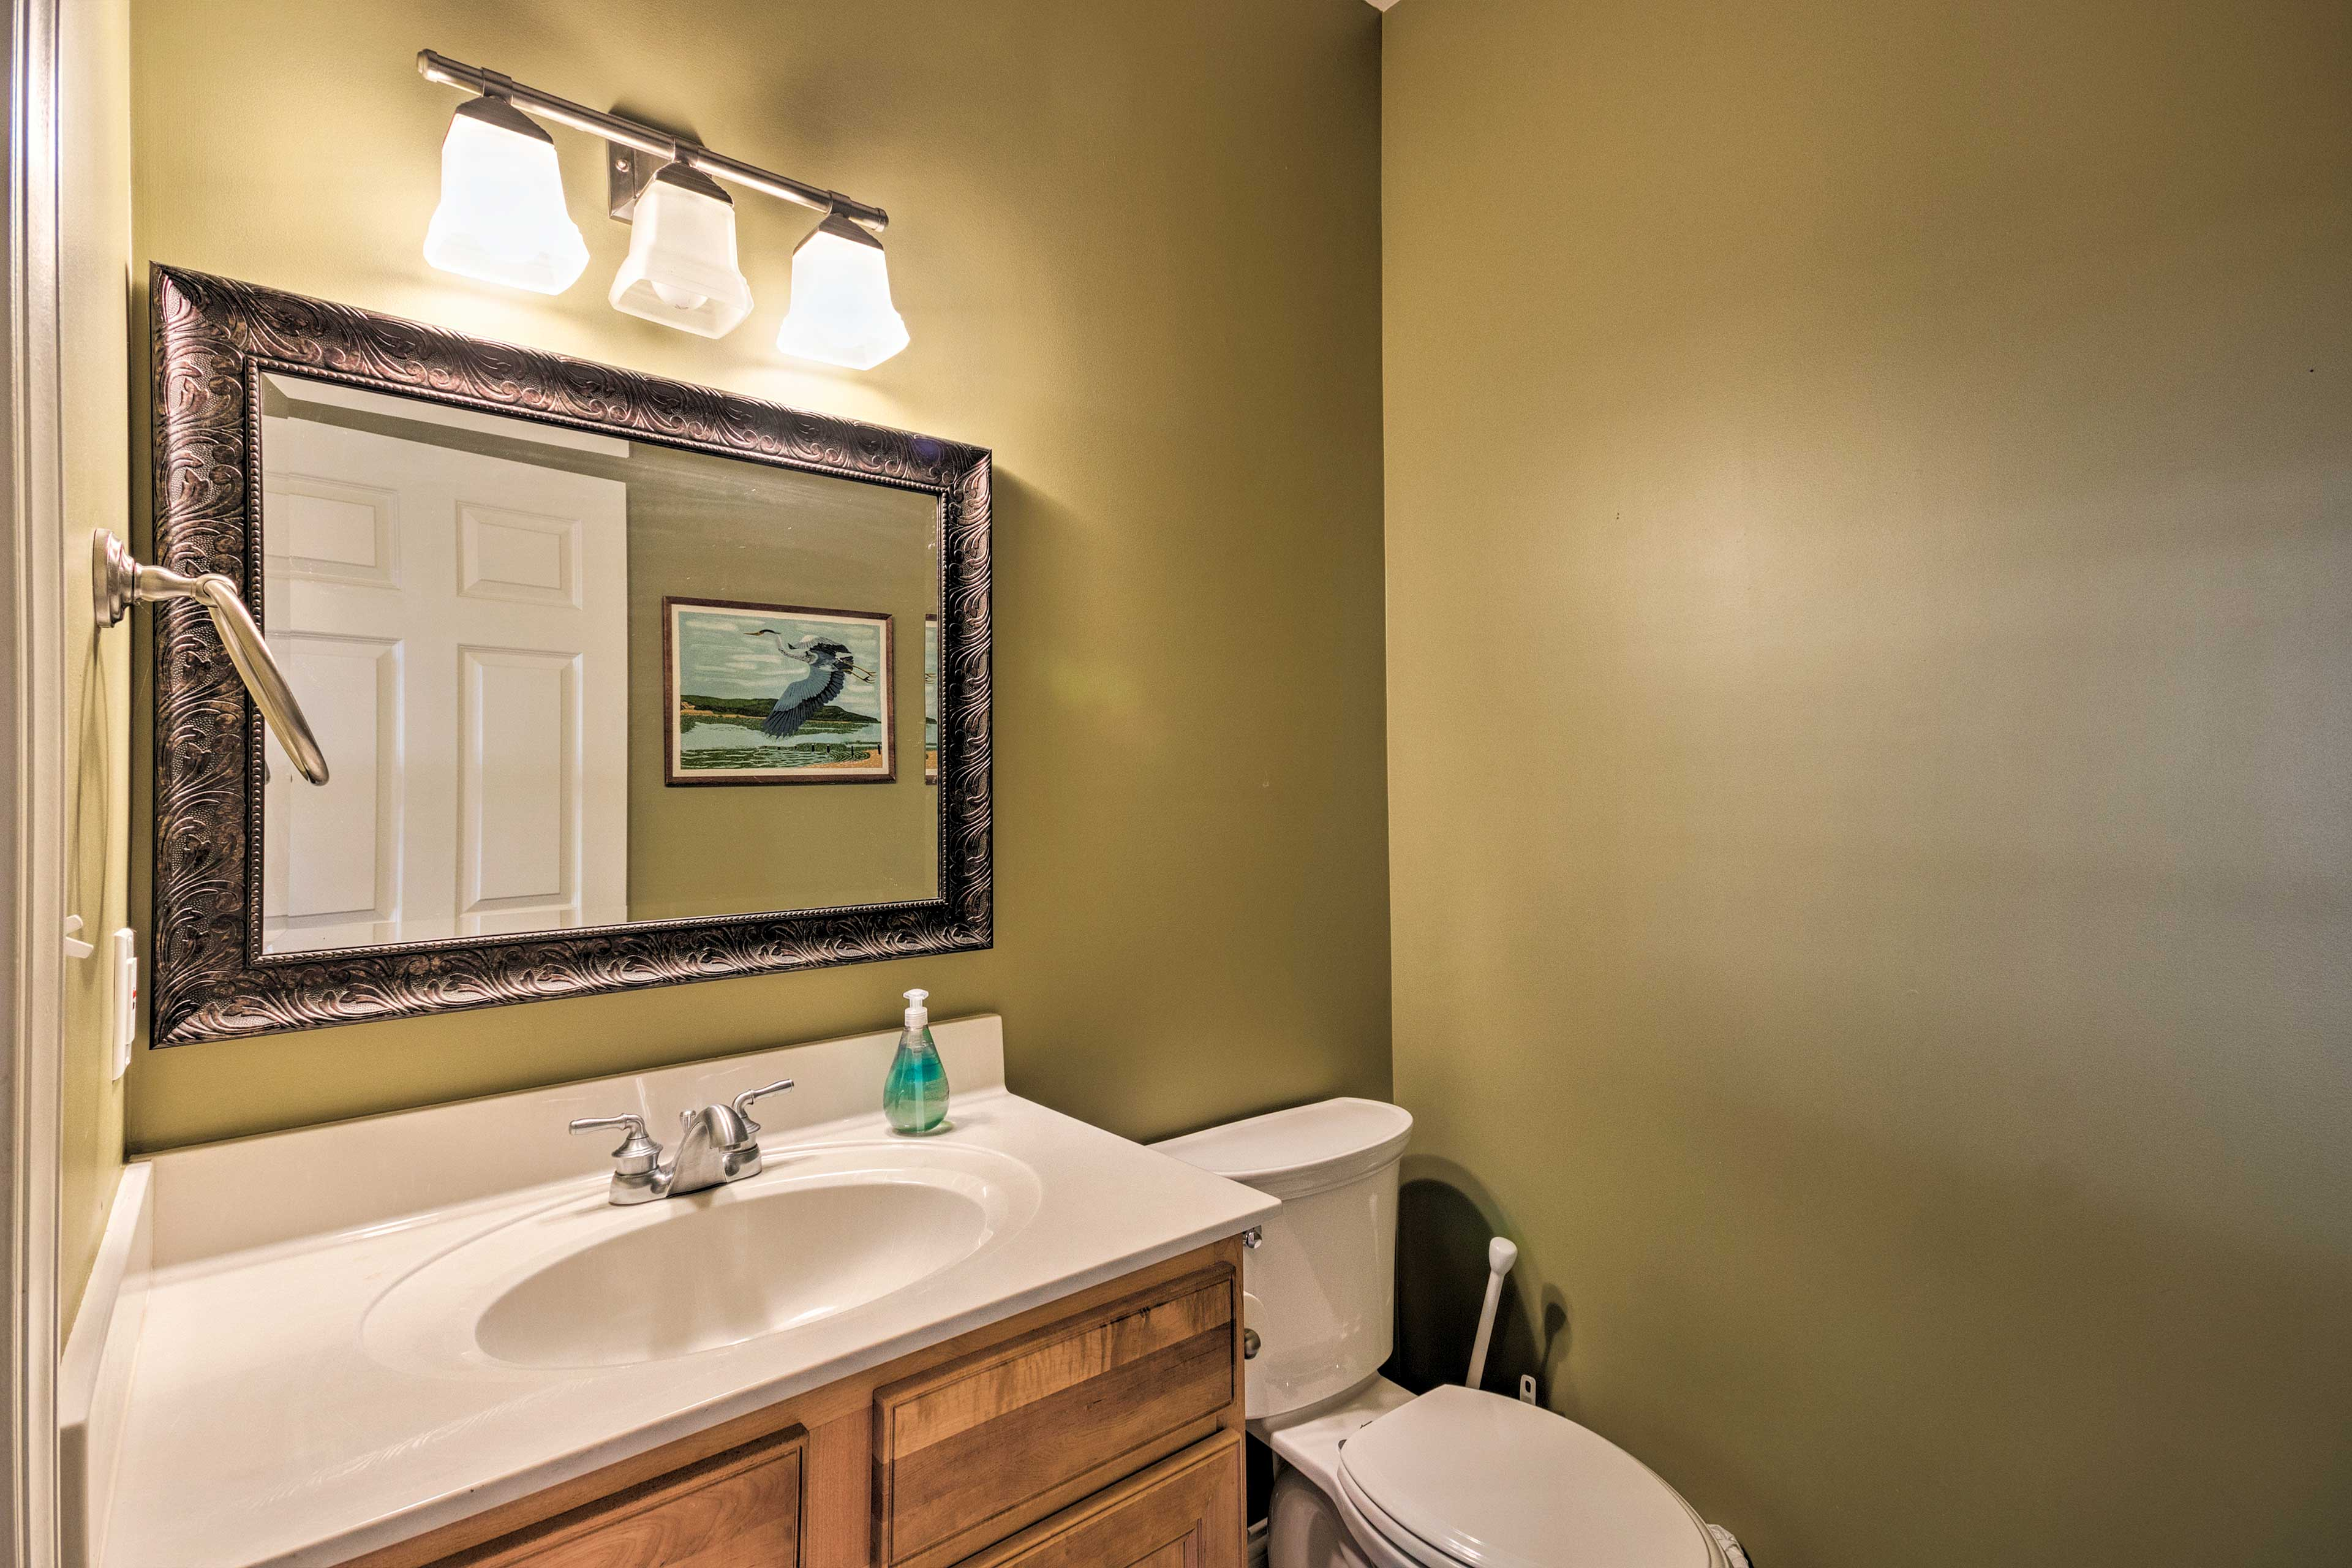 There are 2 full bathrooms and a half-bath in this home.